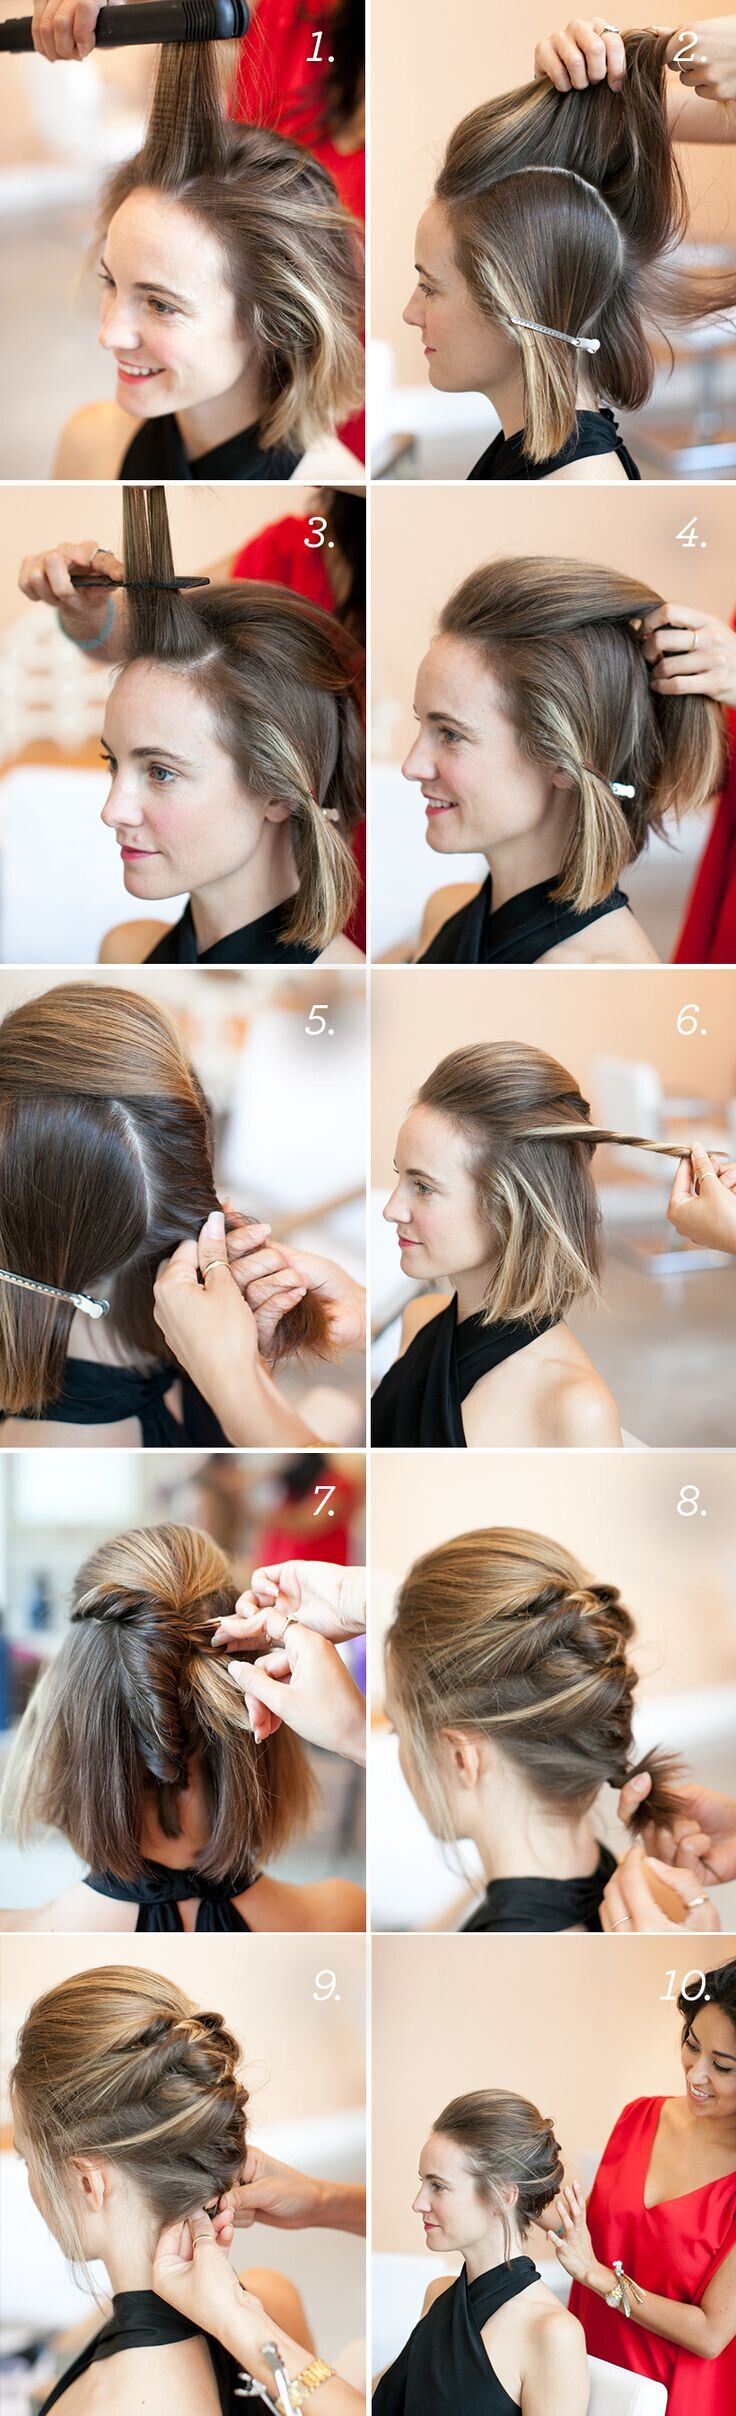 Textured French Twist Style with Bob: Short Updo Hairstyle Tutorial